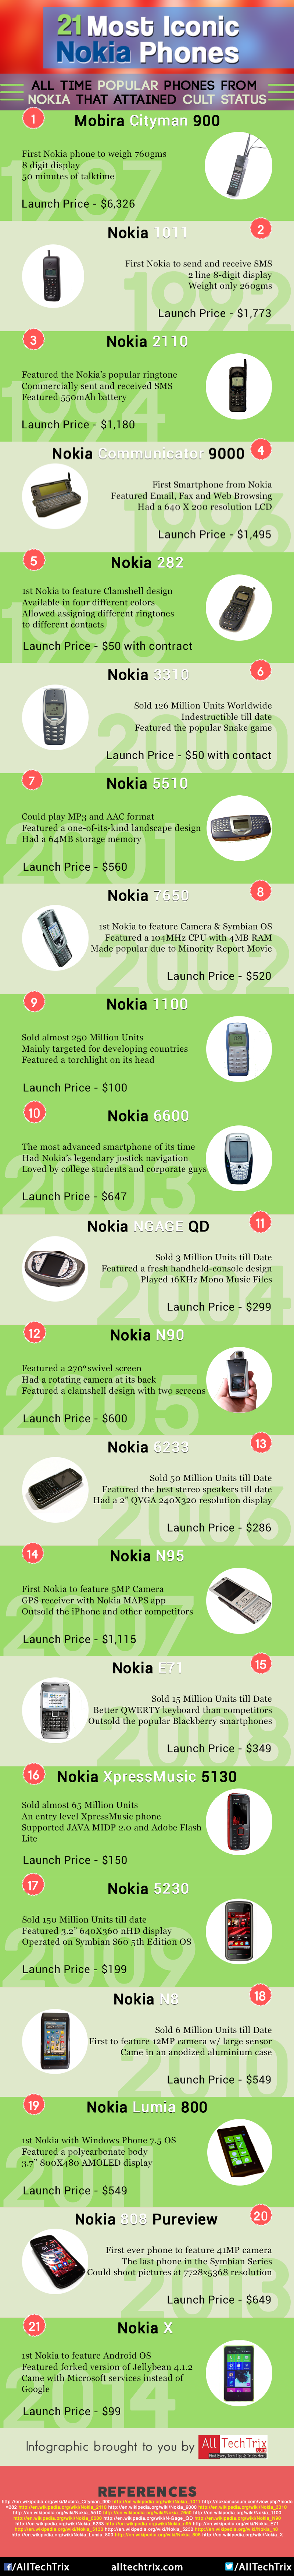 21 most iconic phones from nokia